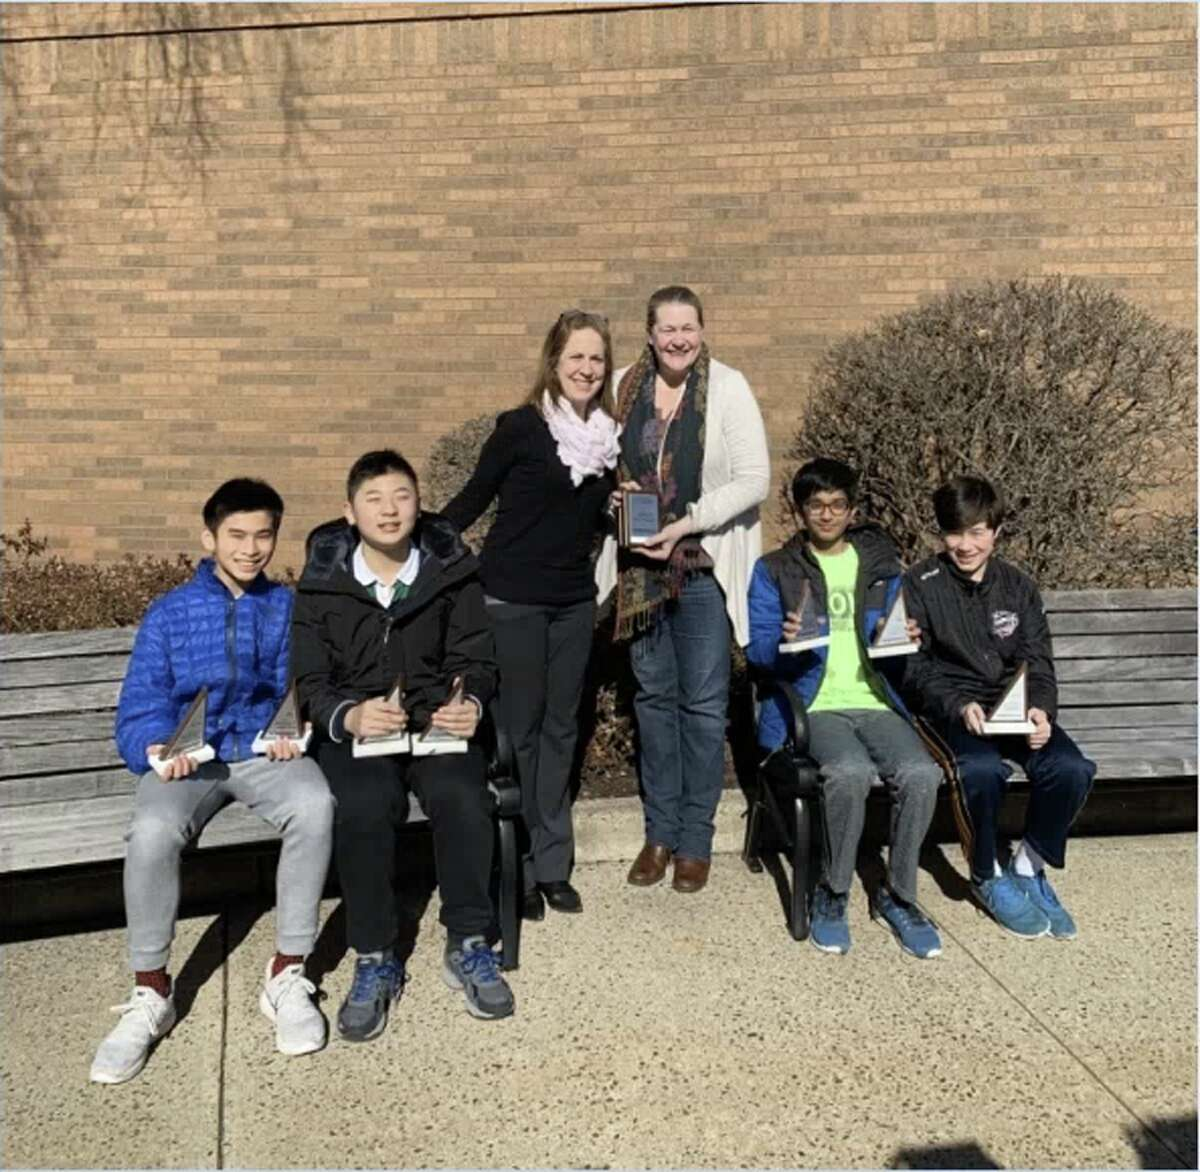 In Team Competition, Saxe Middle School finished in third place, and the team of four students, Lucas Liu, Luke Huang, Sahil Teredesai, and Daryl Lavin, with Zoe Robinson, NCPS K-8 math coordinator, and Lisa Wolff, Saxe Middle School math teacher, will advance to the state competition.